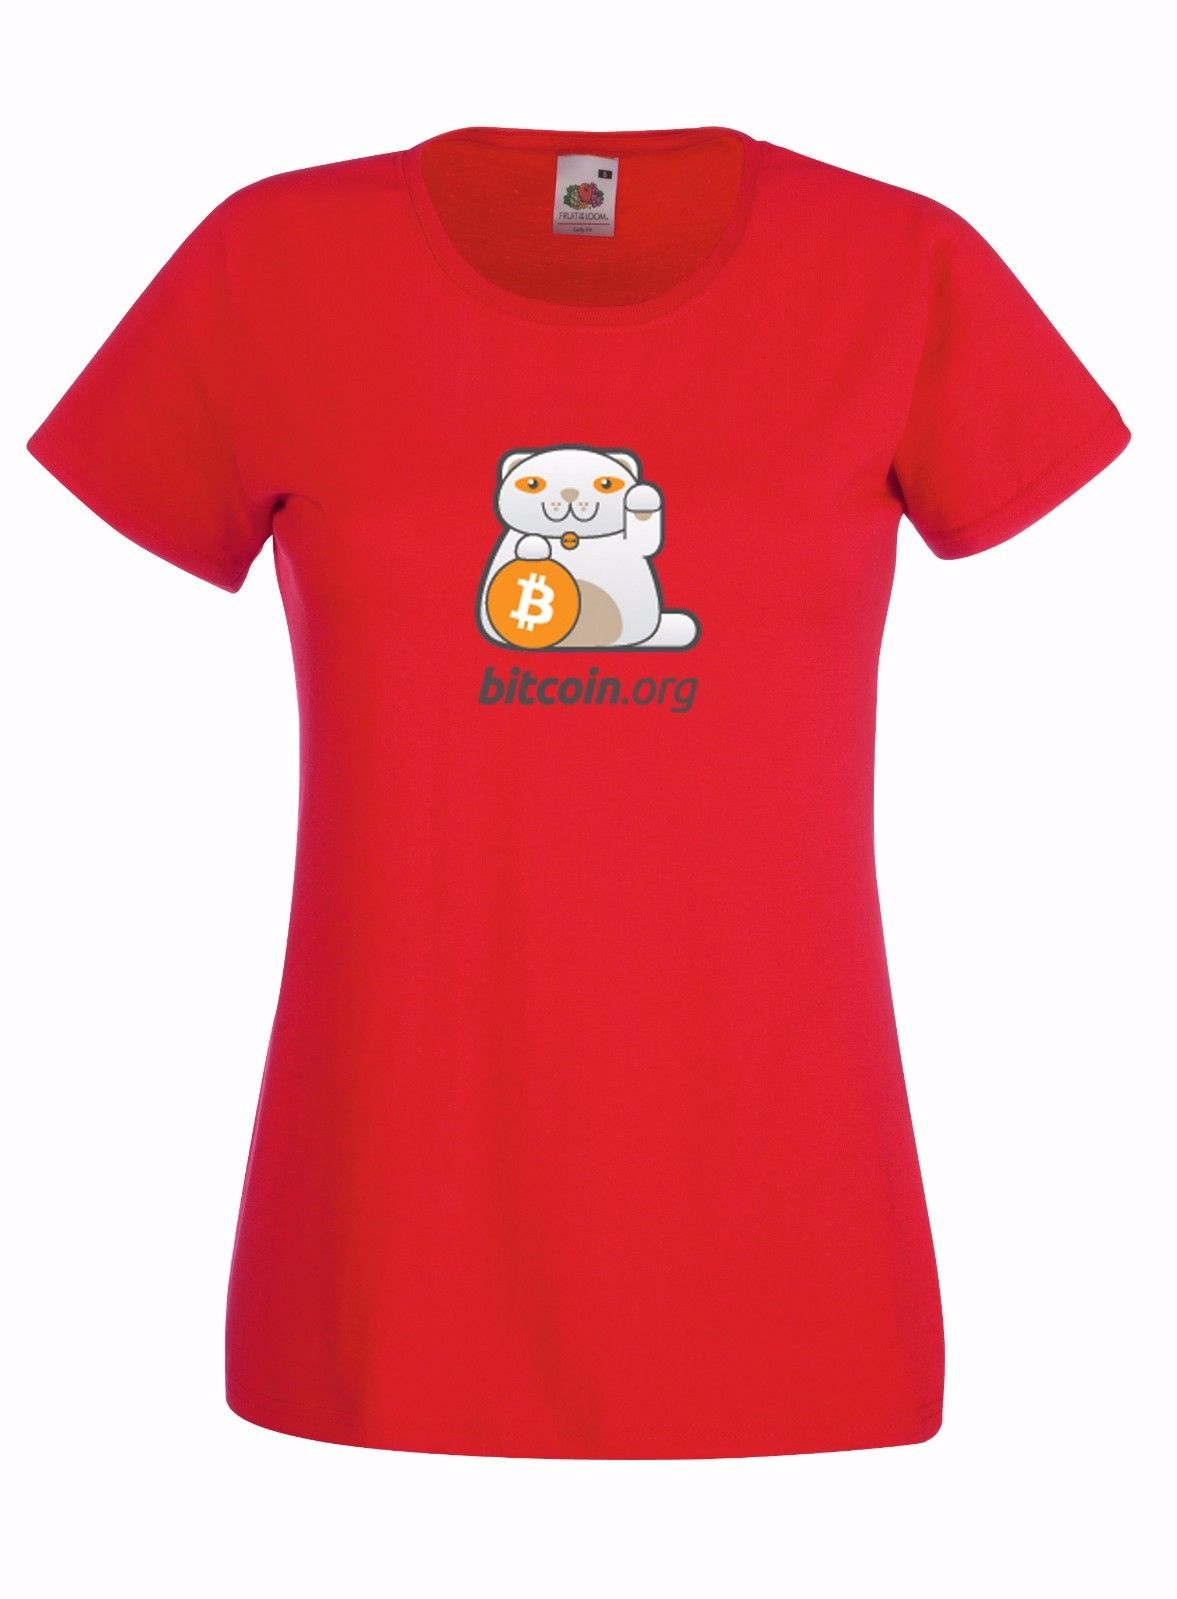 BITCOIN INSPIRED GRAPHIC LADIES SKINNY HIGH QUALITY 100/% COTTON T-SHIRT